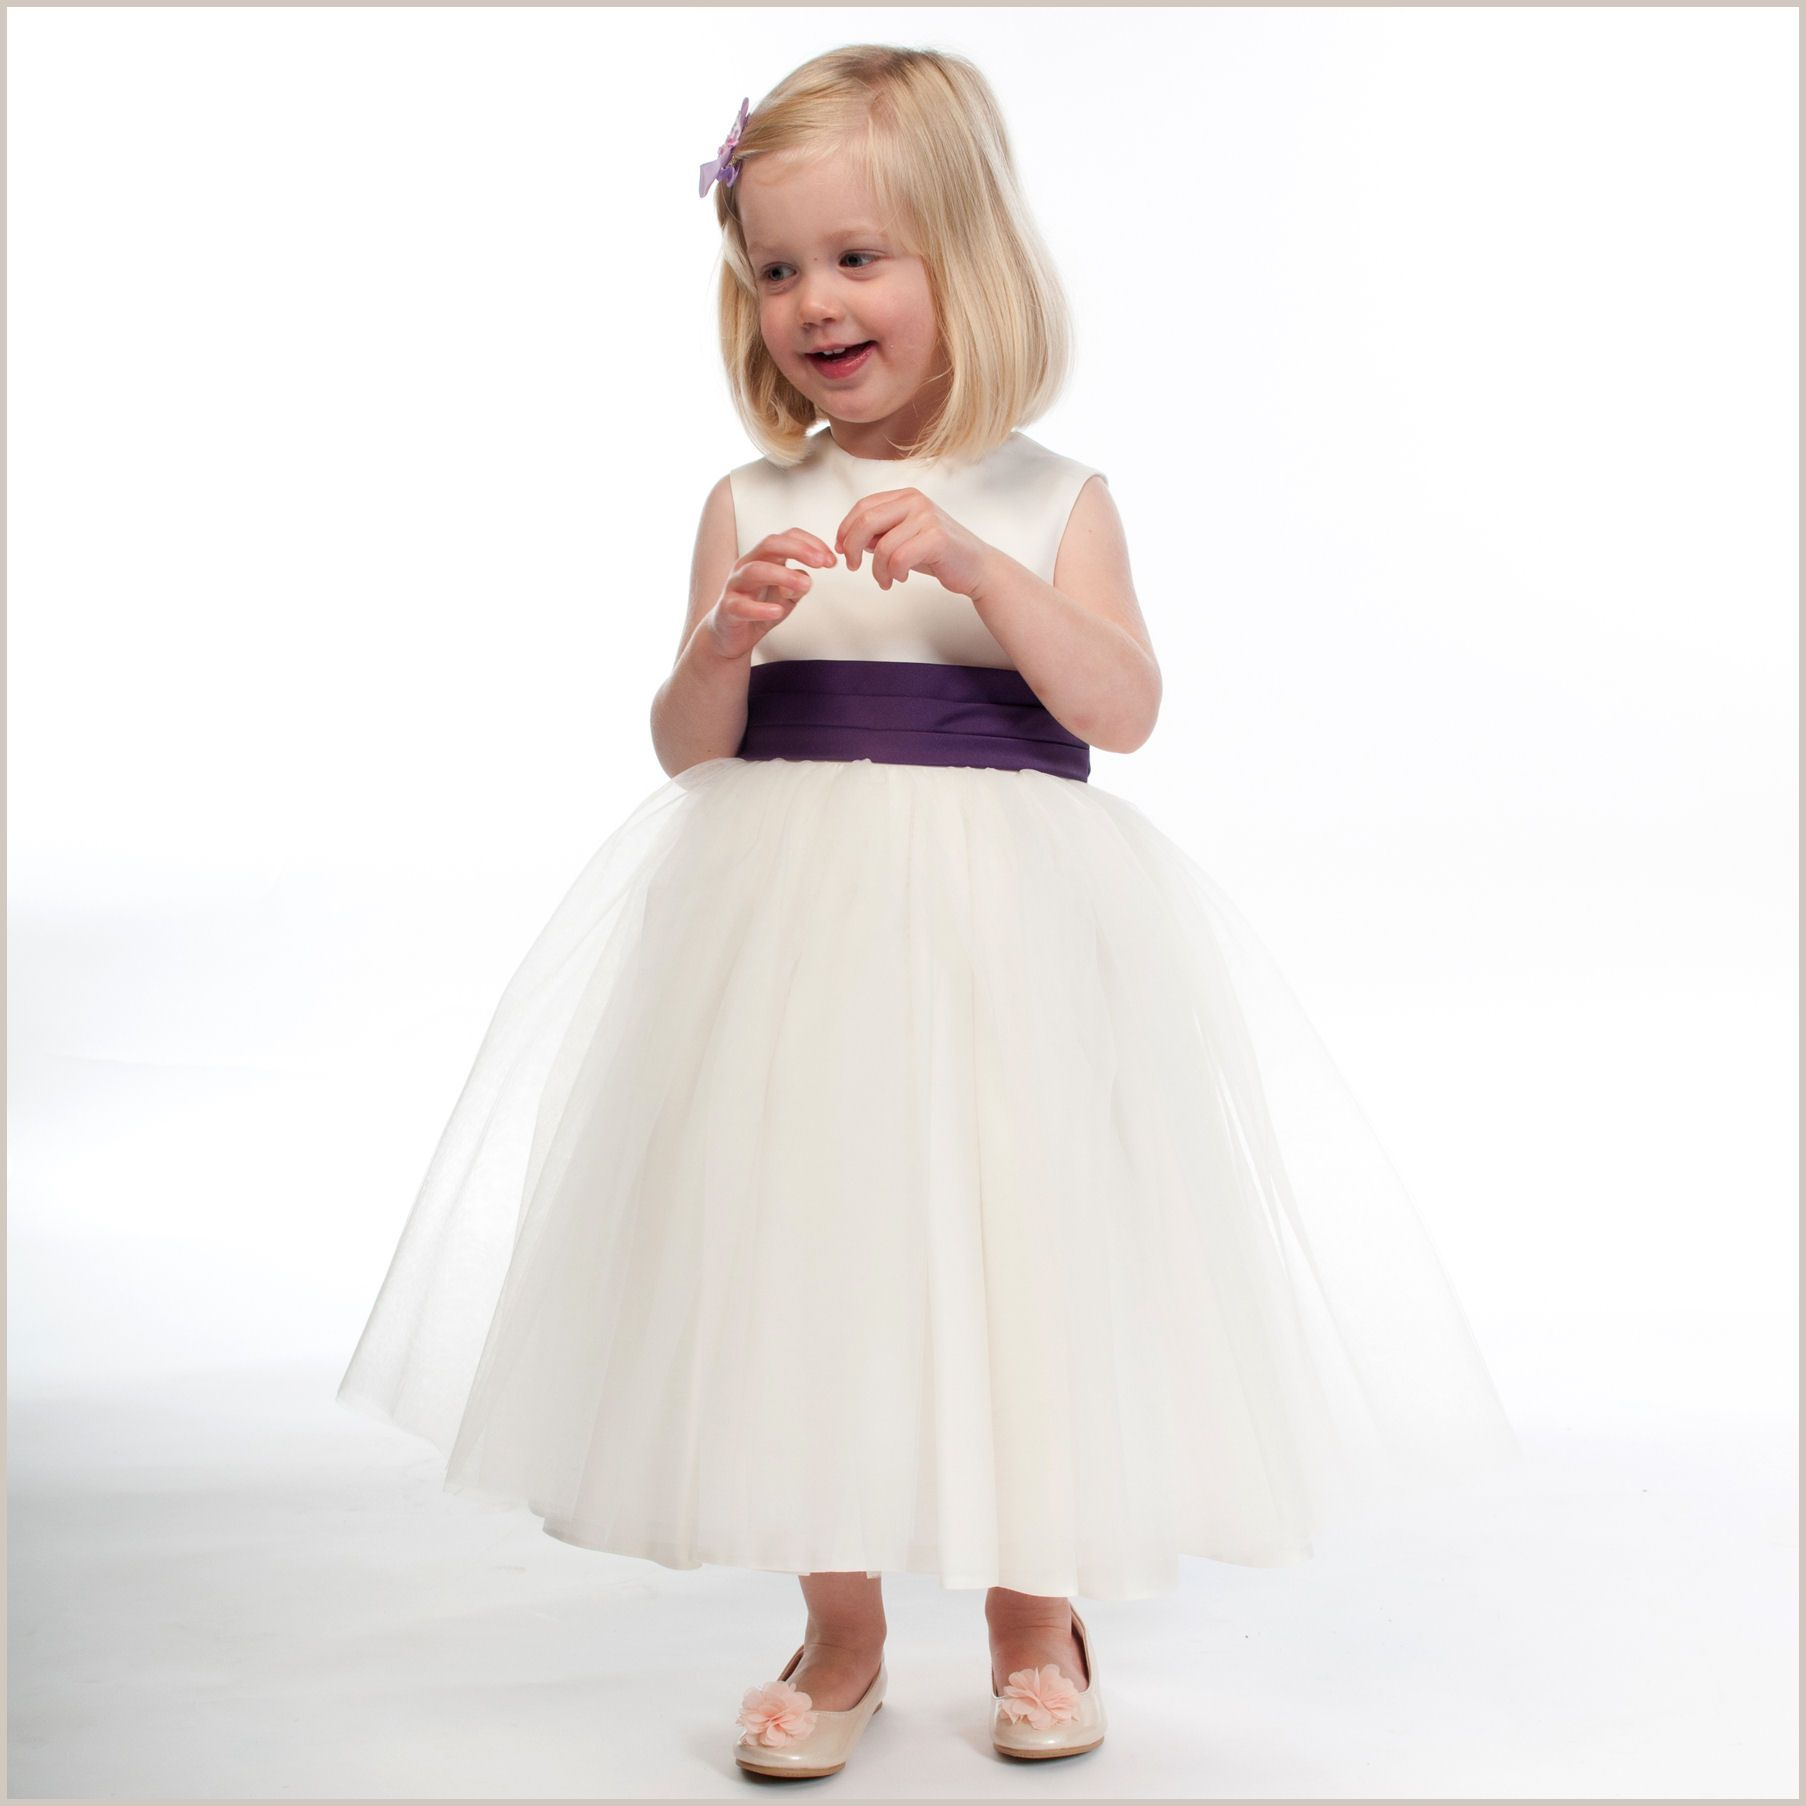 Vienna Ivory Tulle Dress With Purple Sash From Demigella